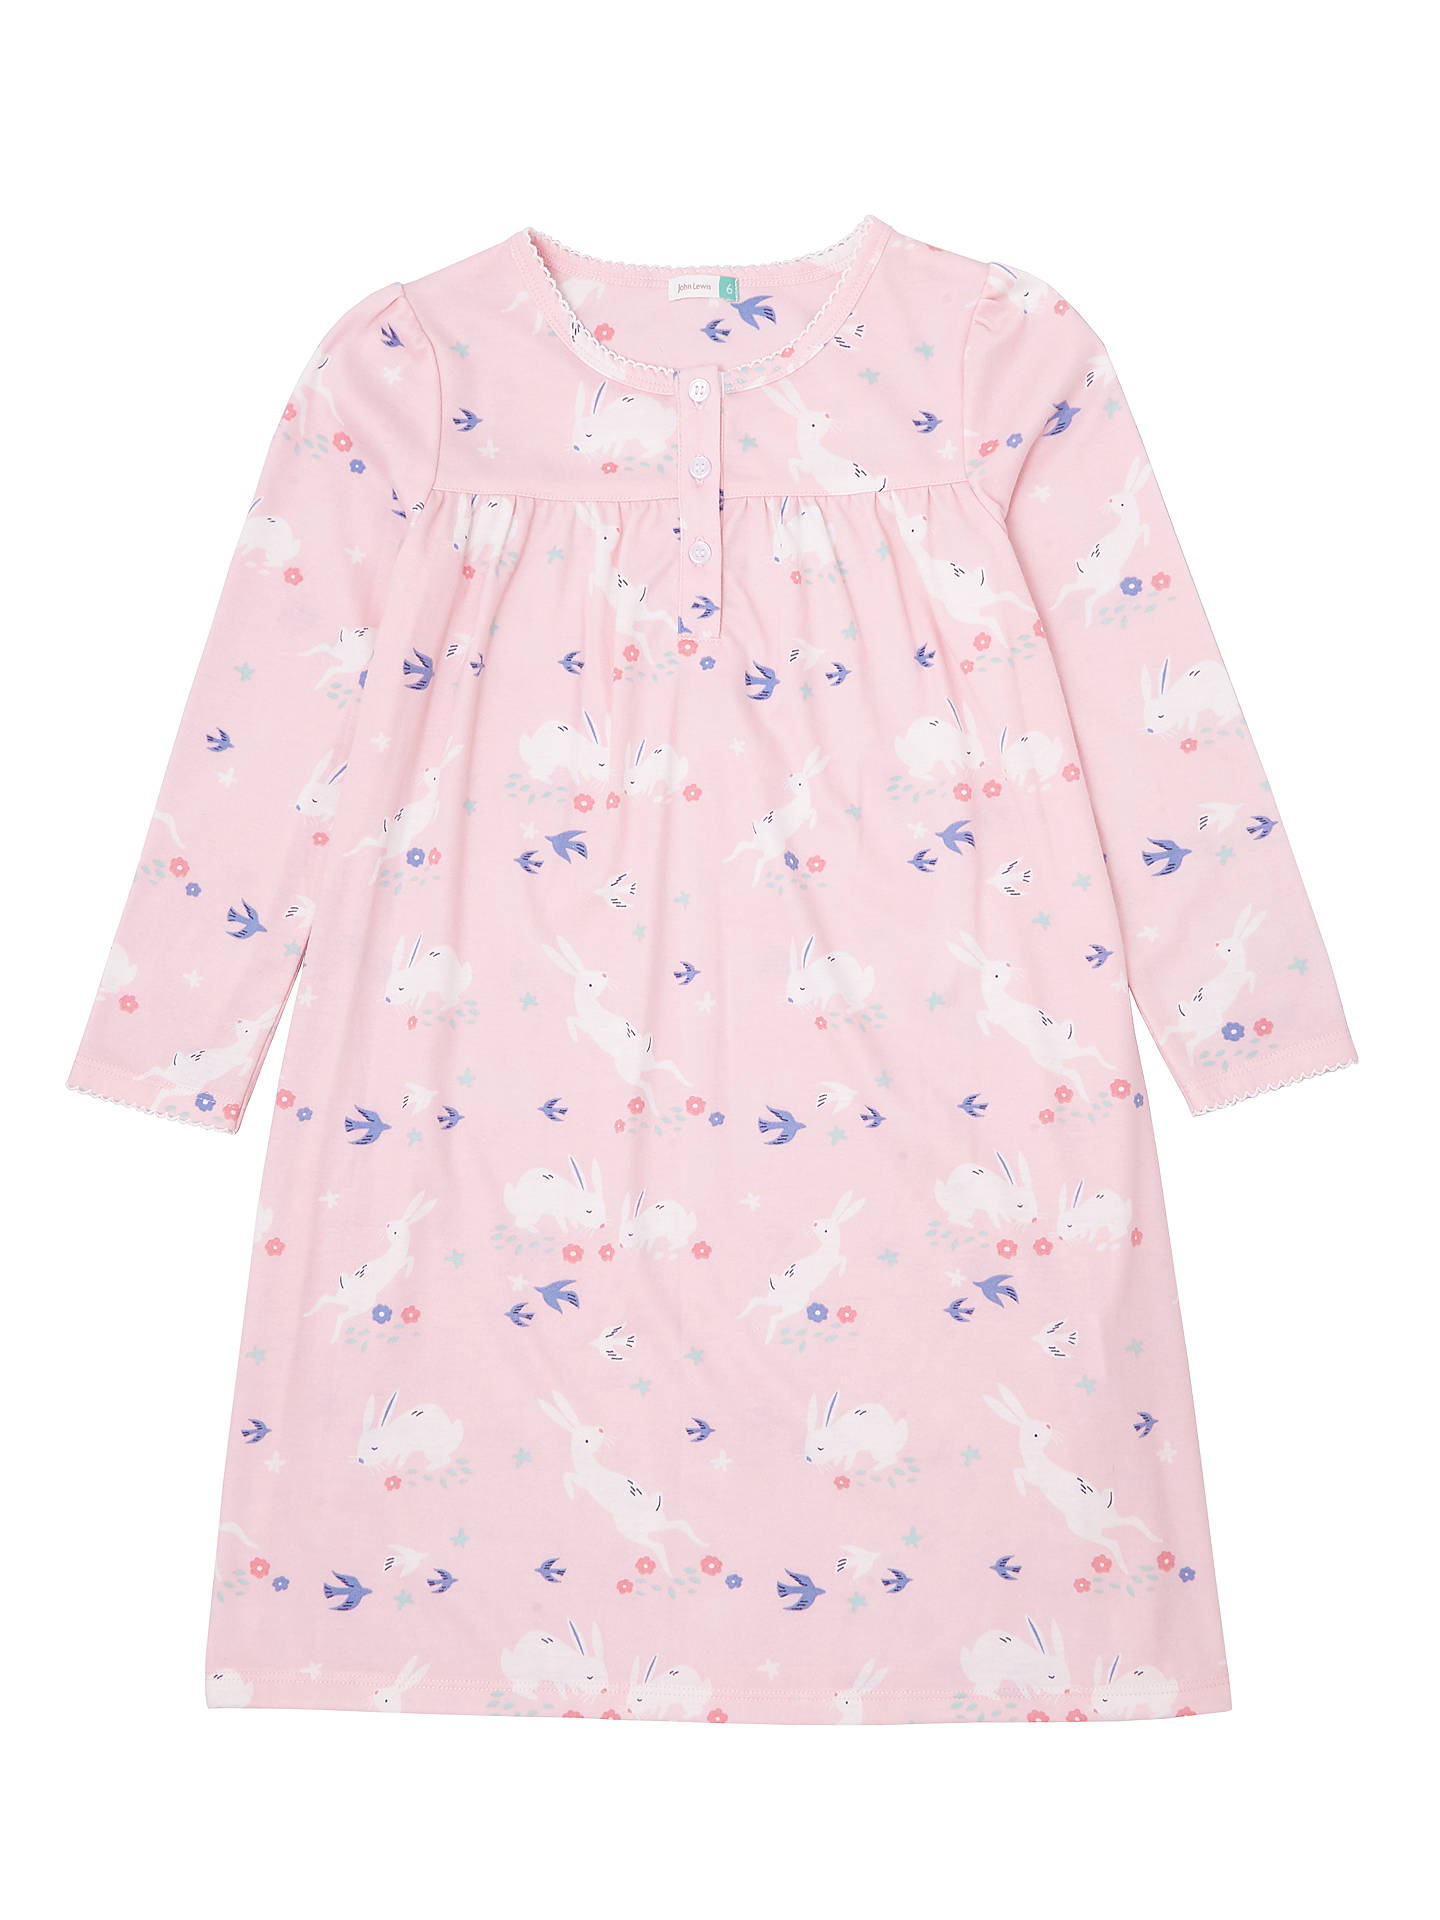 BuyJohn Lewis & Partners Girls' Bunnies Print Nightdress, Pink, 2 years Online at johnlewis.com